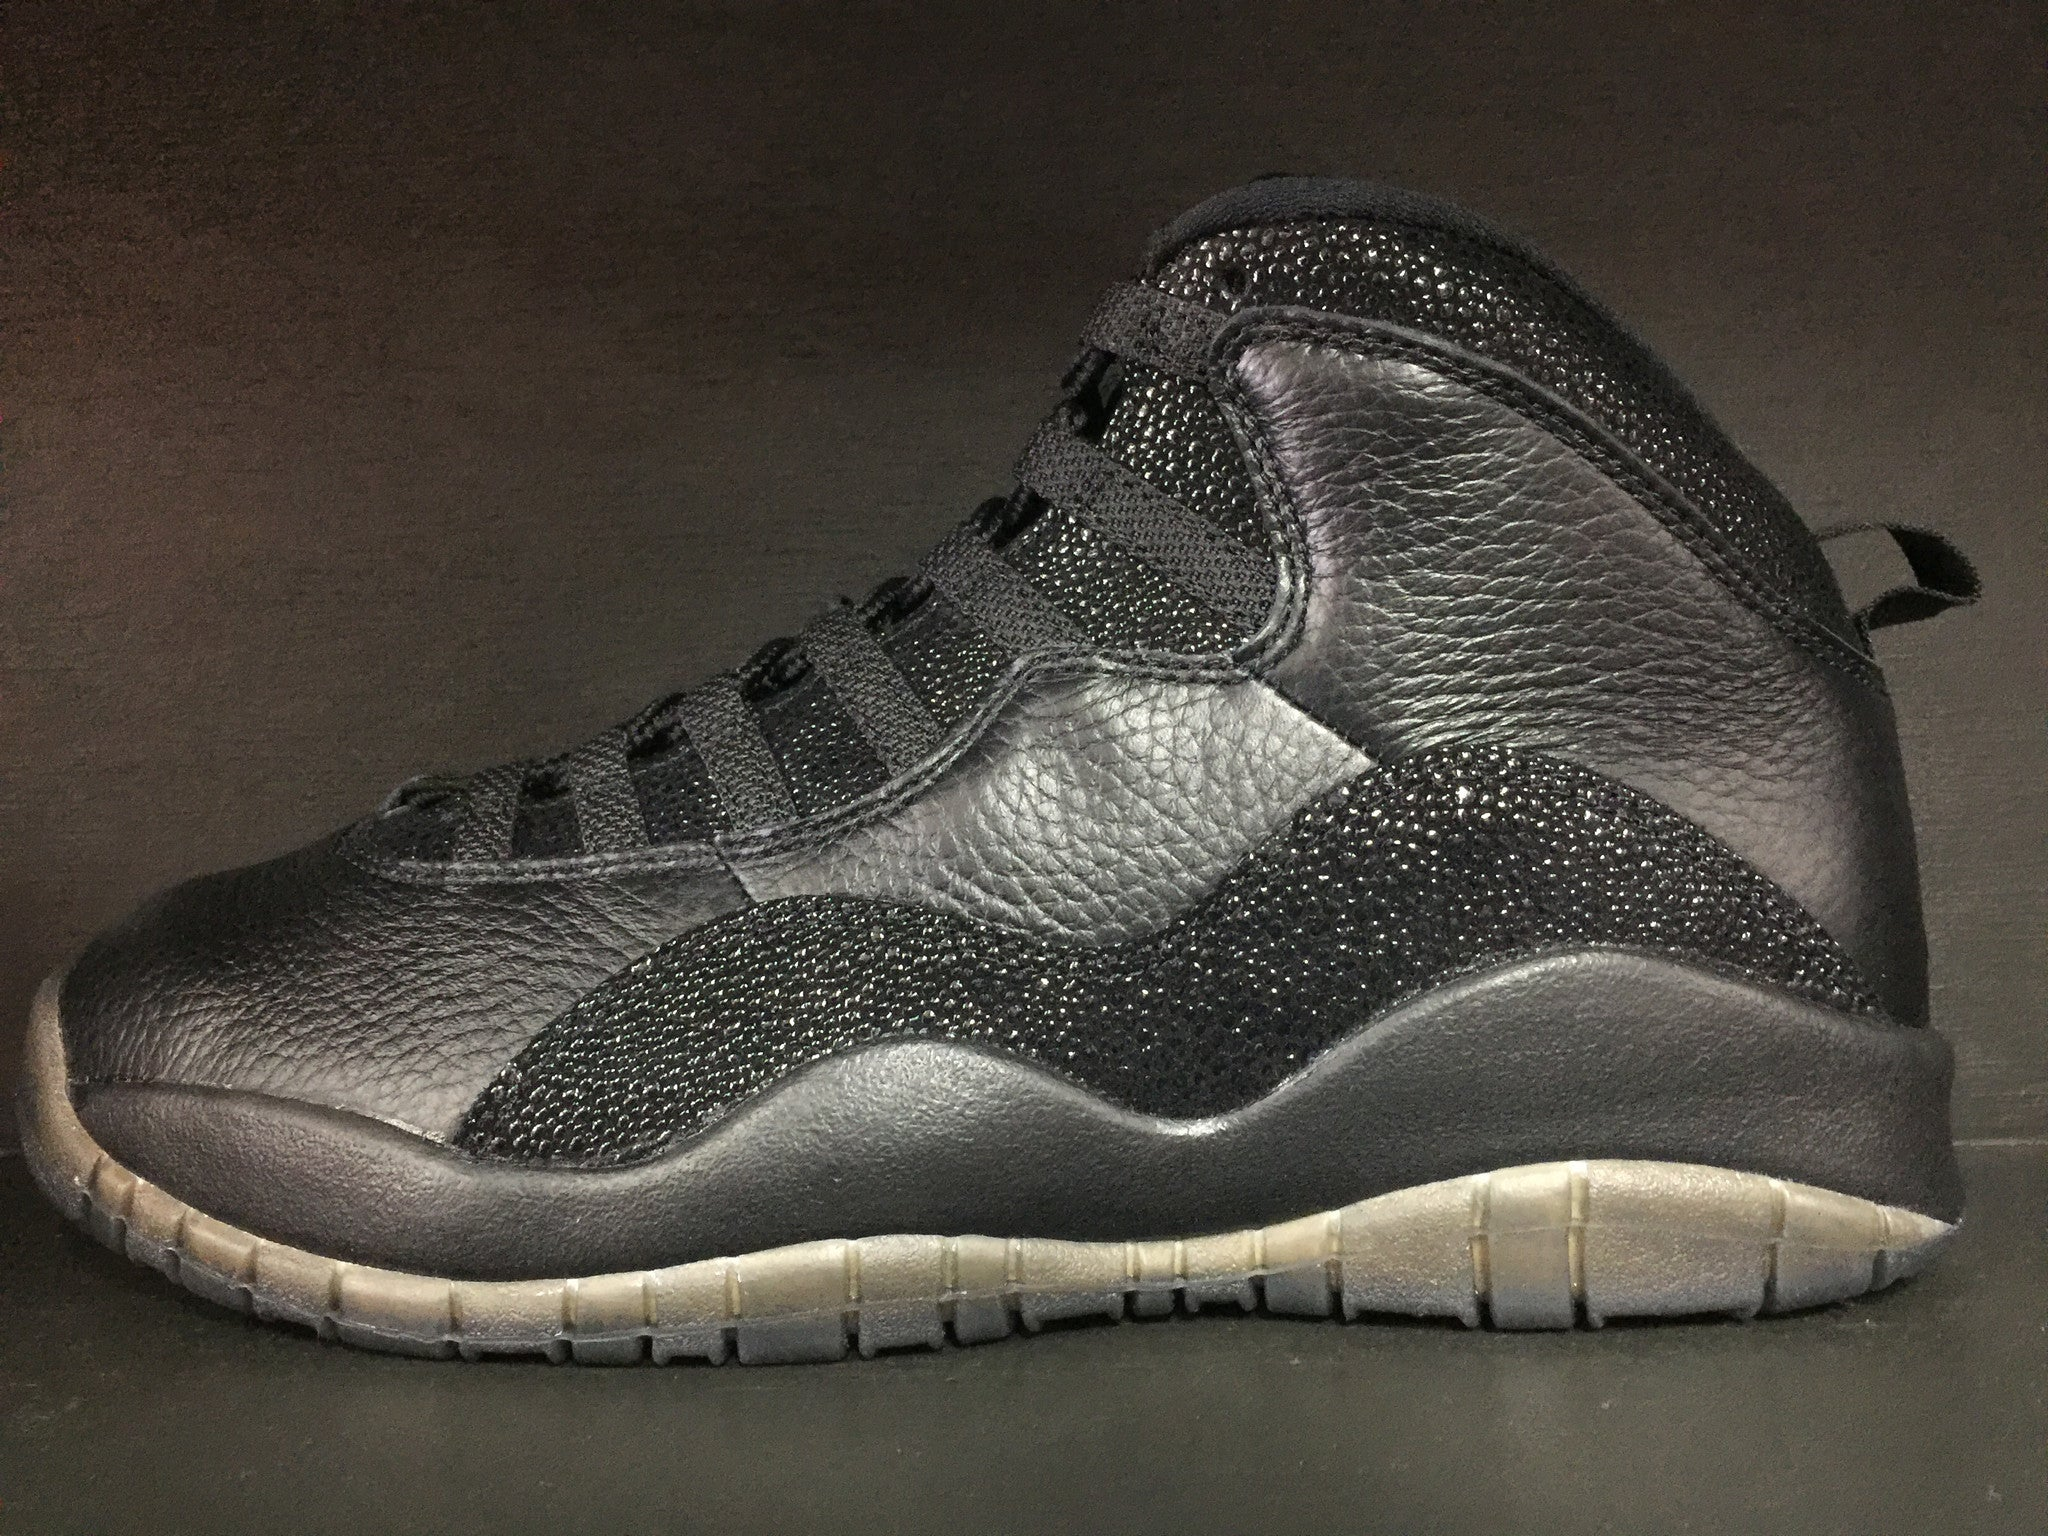 Air Jordan 10 Retro 'OVO' Black